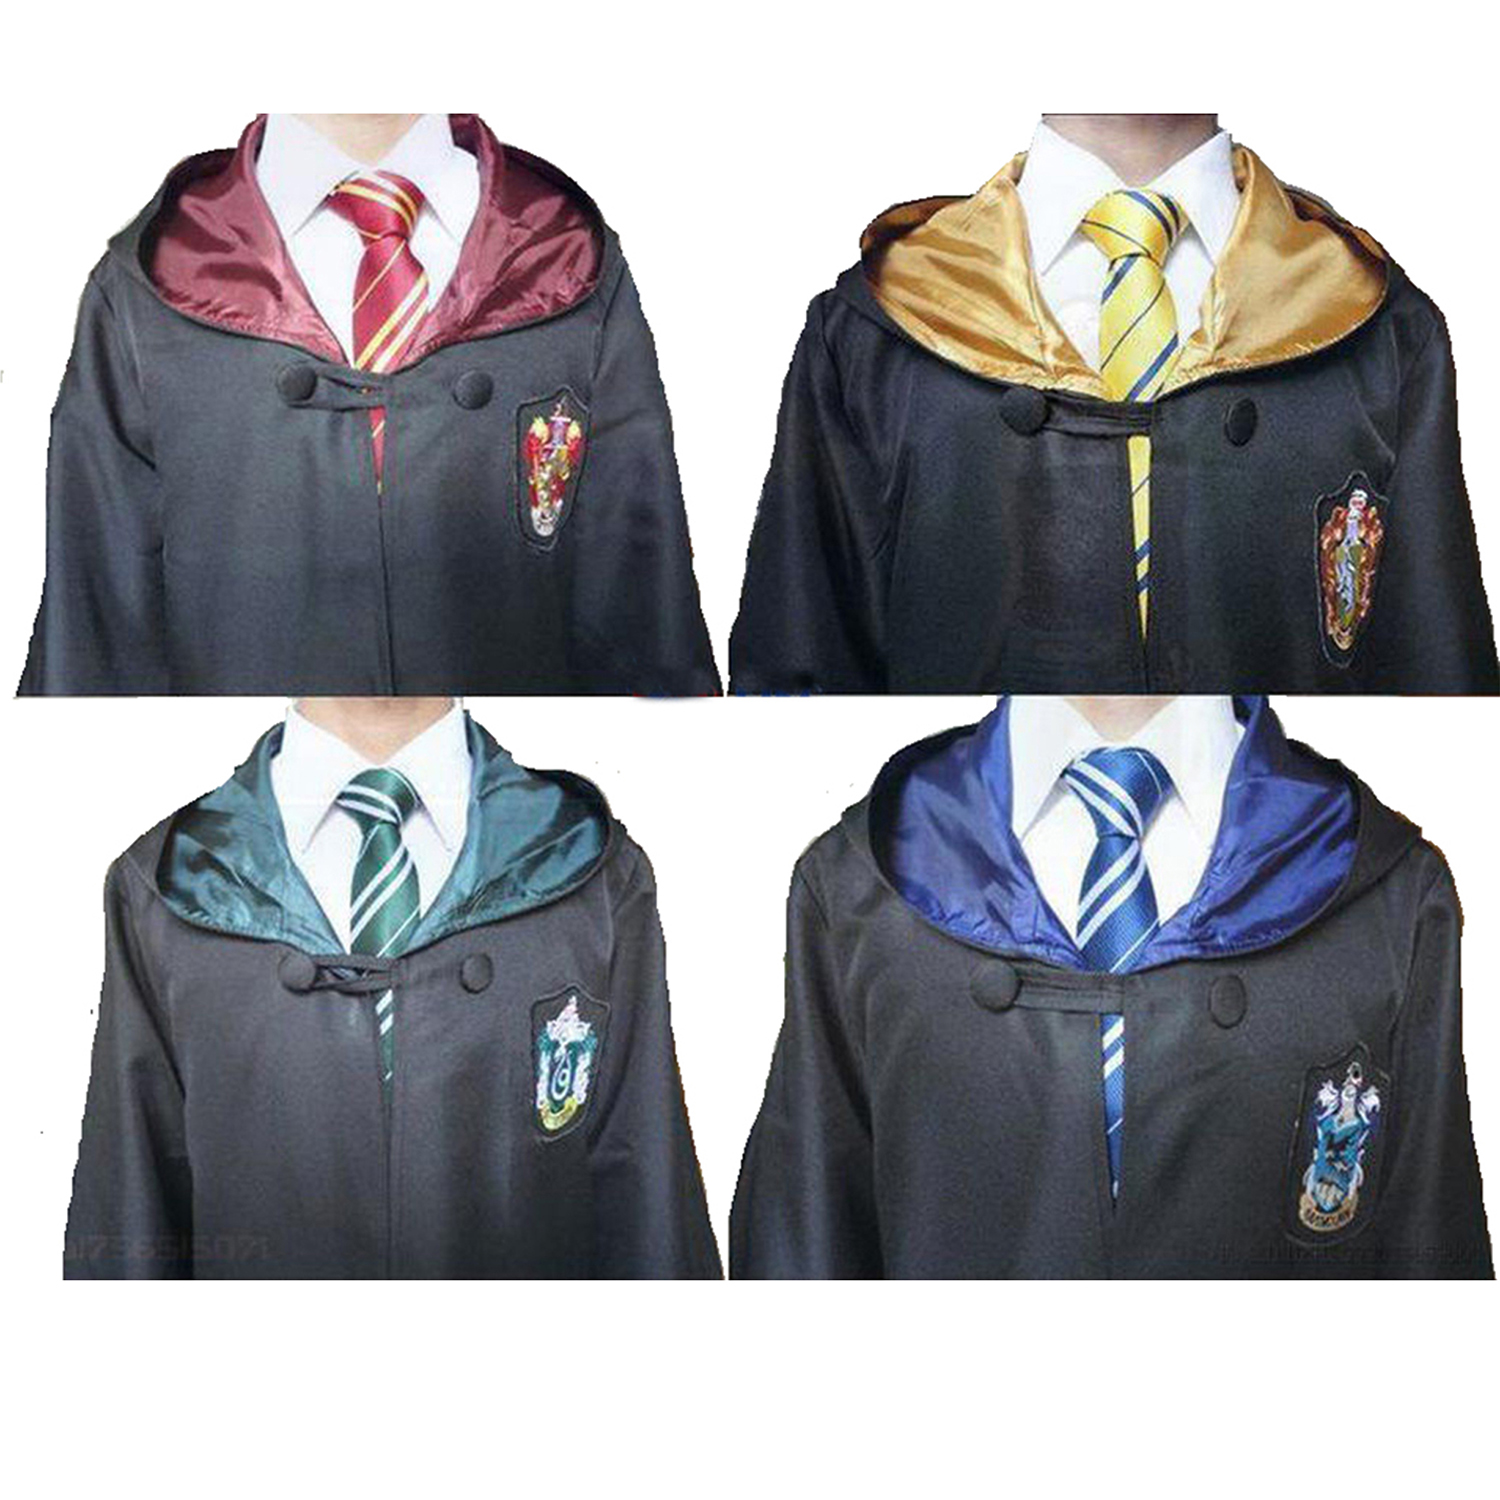 Cosplay Costume Potter Robe Cloak with Tie Scarf Ravenclaw Gryffindor Hufflepuff Slytherin Potter Costume